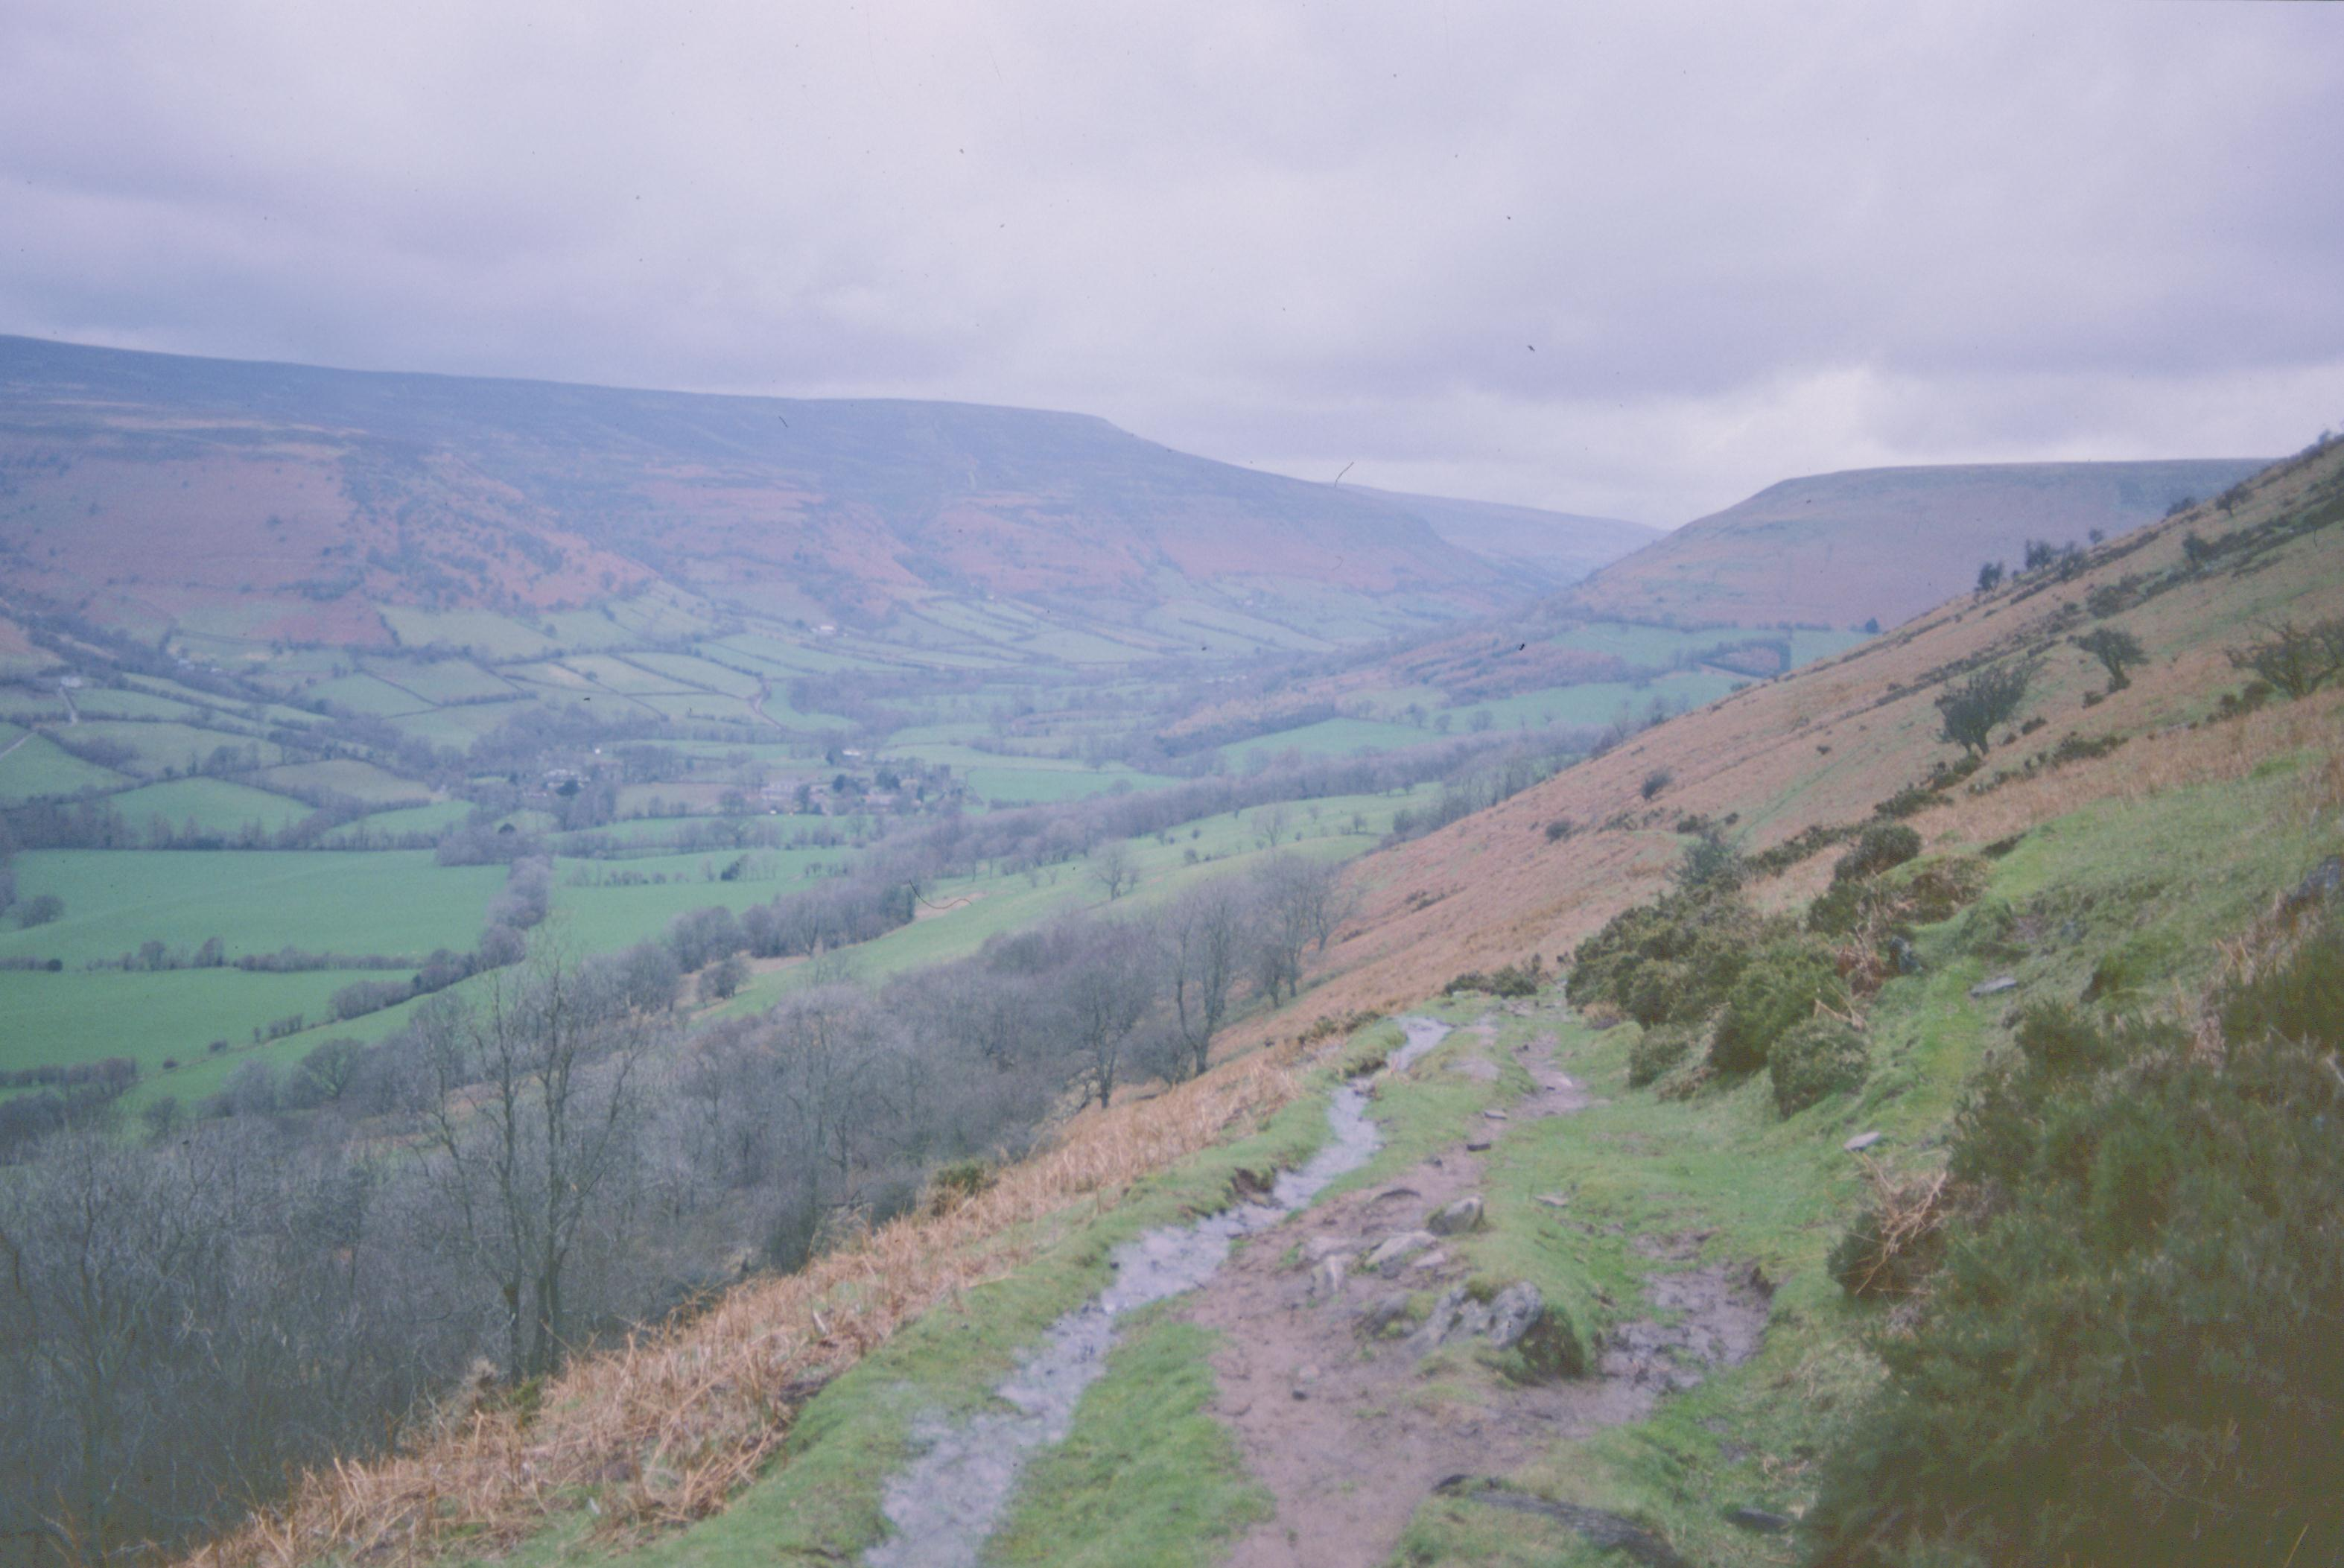 On the descent to Llanthony